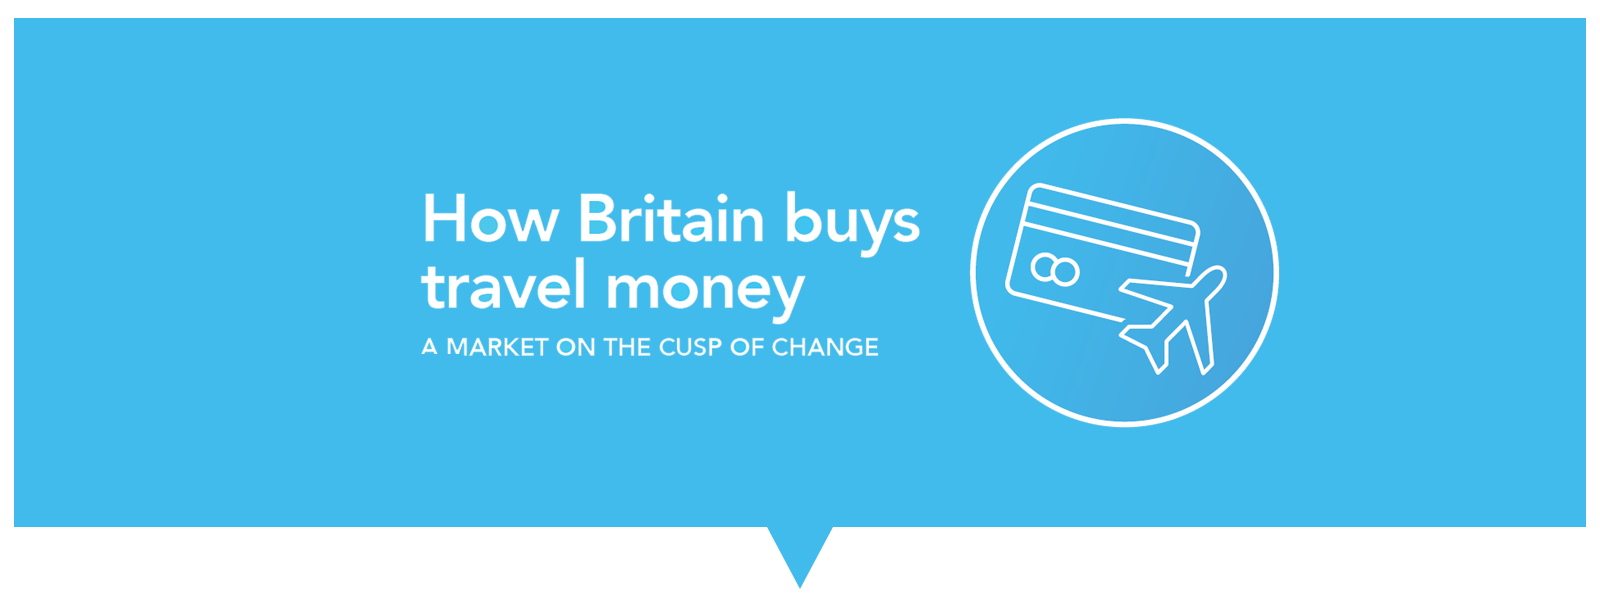 britain-buys-travel-money-infographic-6